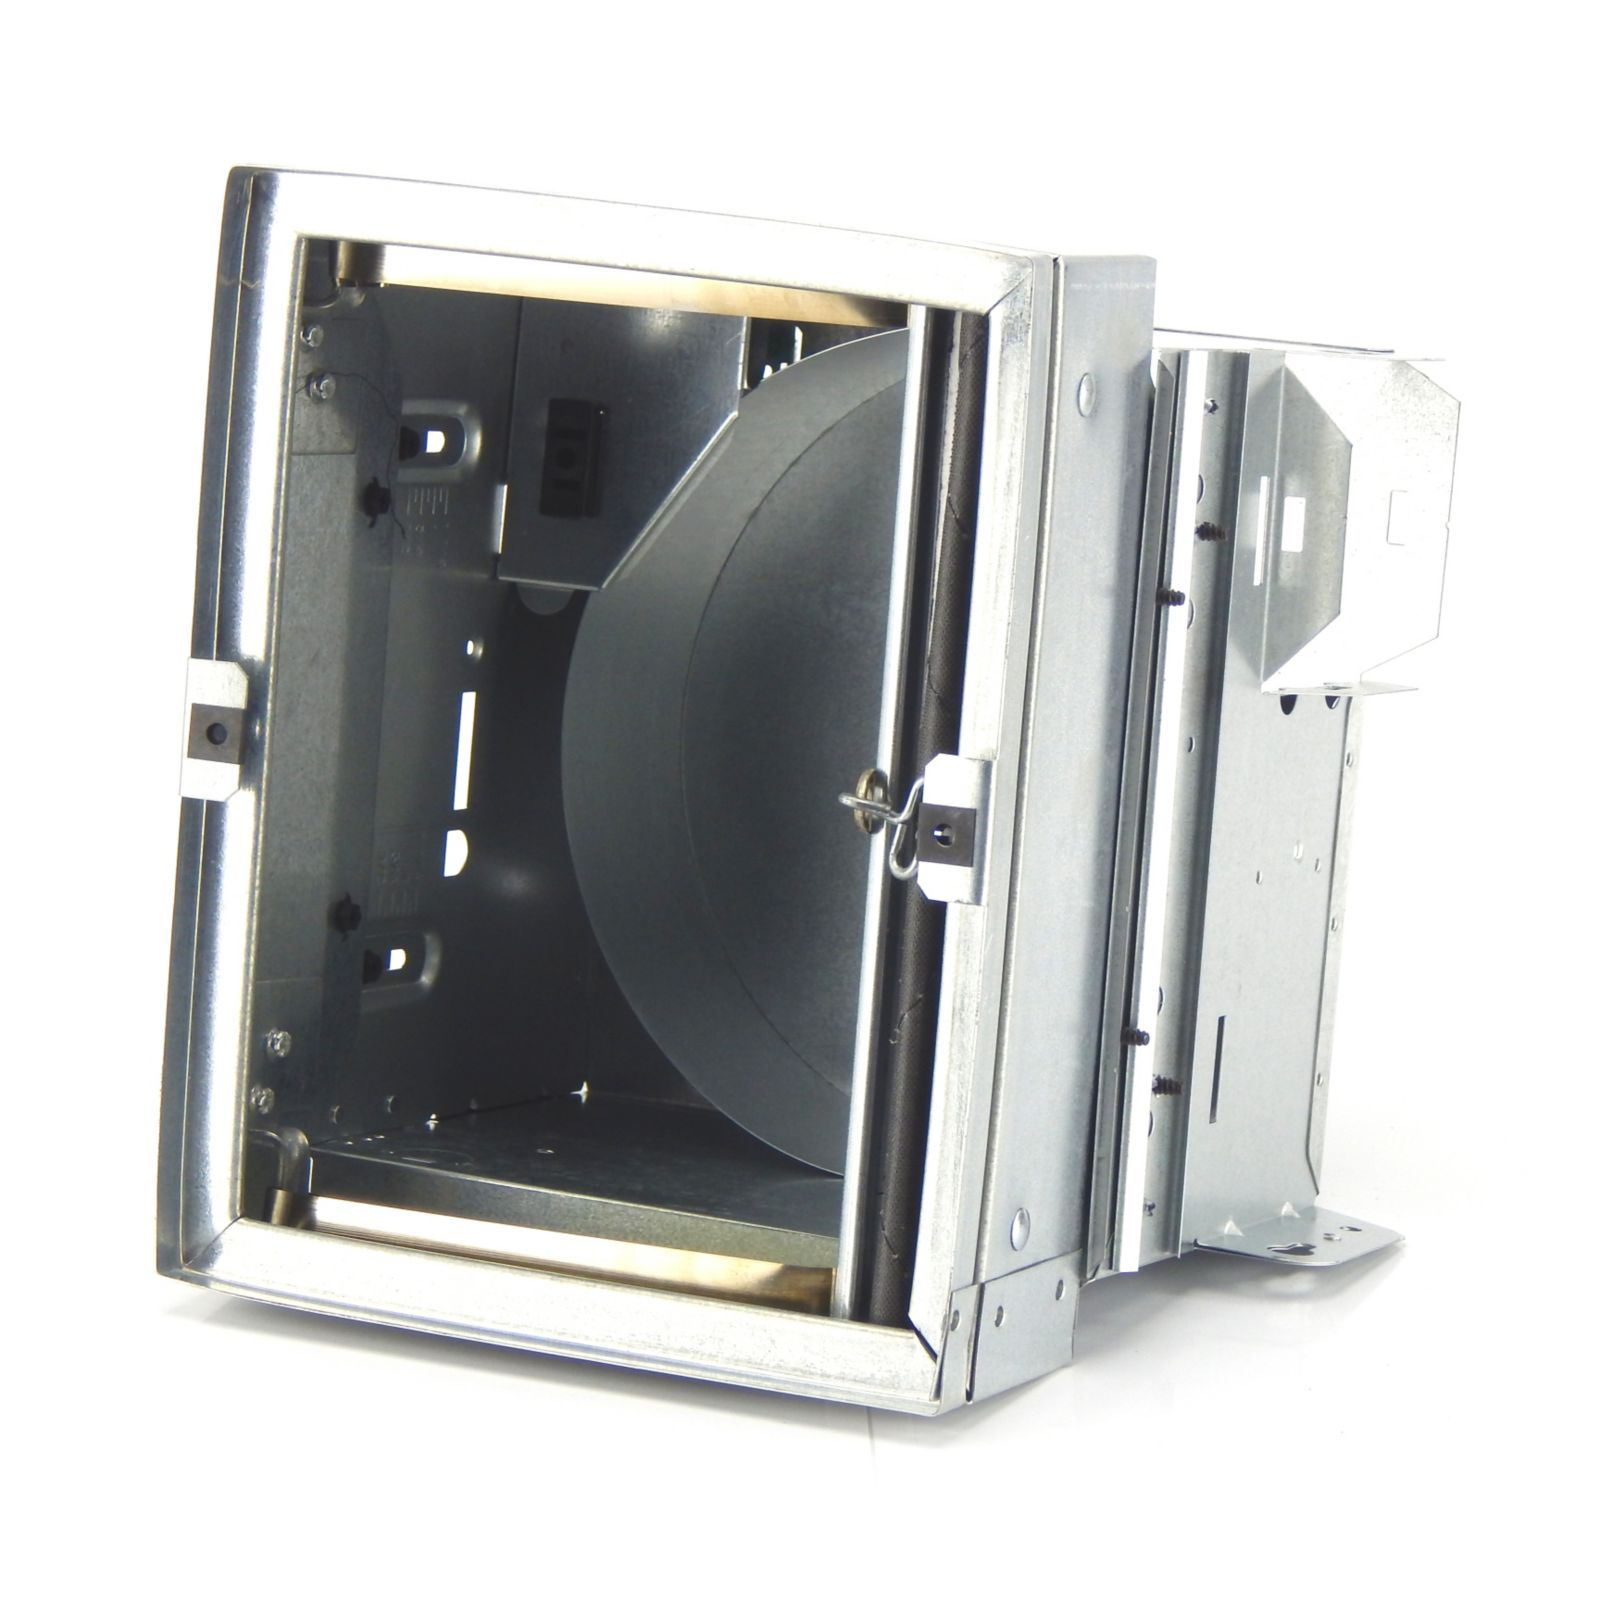 Broan RDH - Housing With Radiation Damper Attached To Be Used With Models 110RDF, 80RDF, HD80RDF And HD50RDF